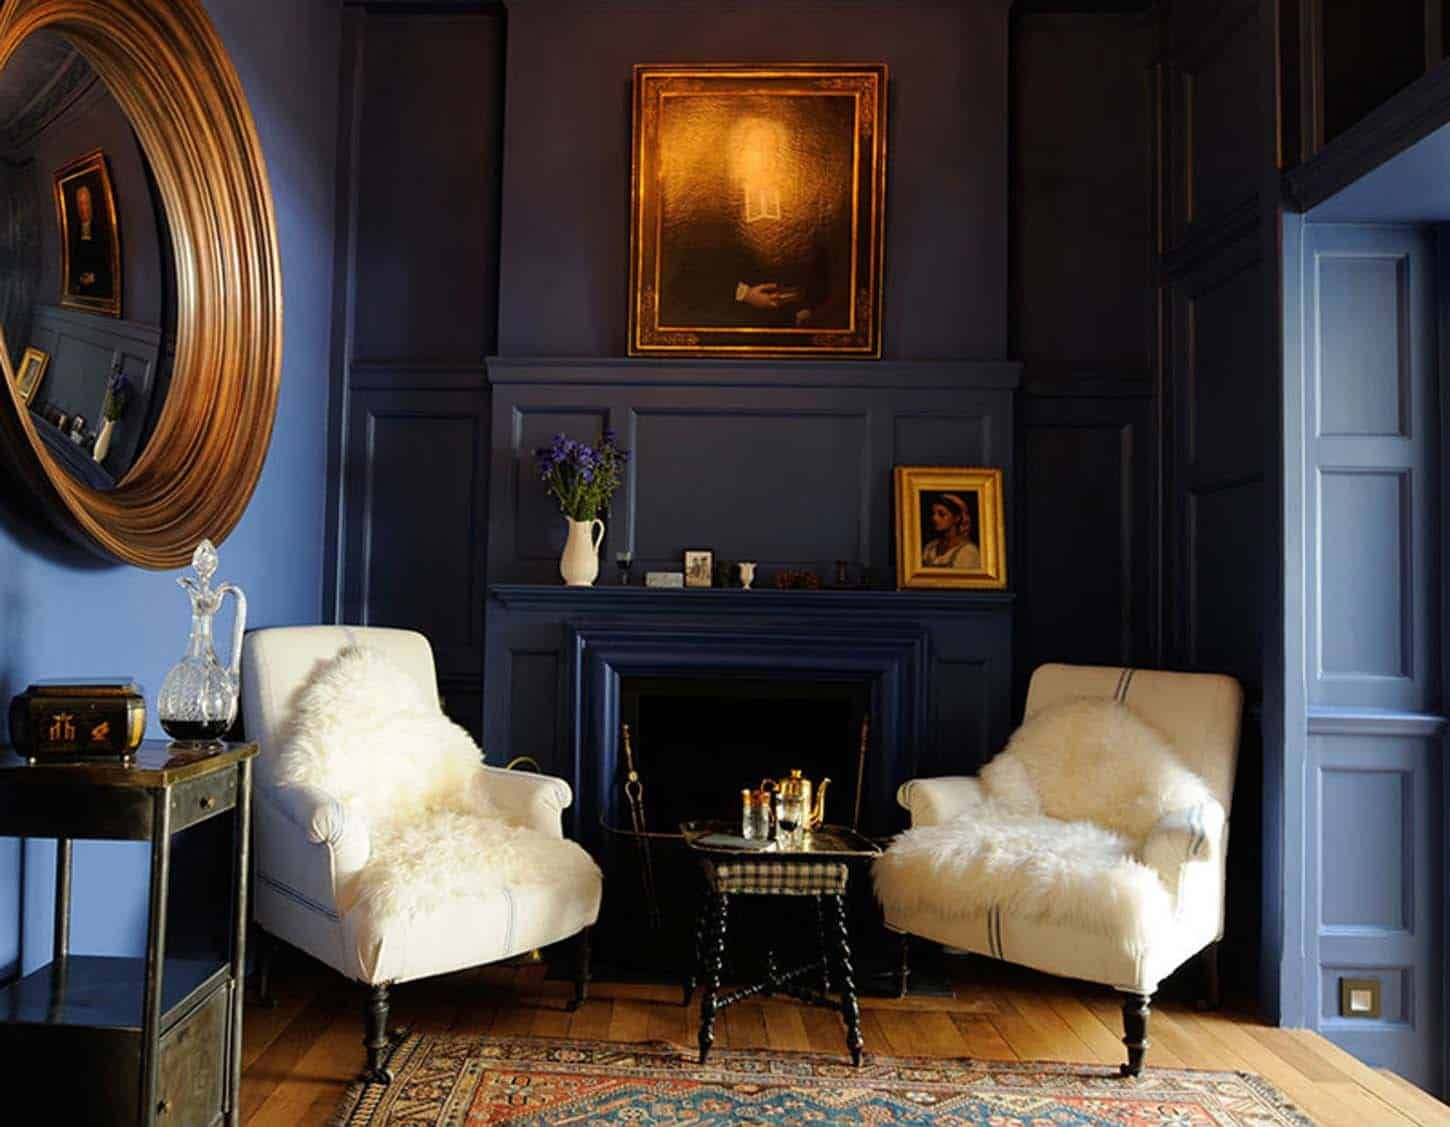 New Favourite Color Scheme On Pinterest S Navy Blue Gold Gold Living Room Decor Blue Interior Design Gold Living Room #navy #blue #and #gold #living #room #decor